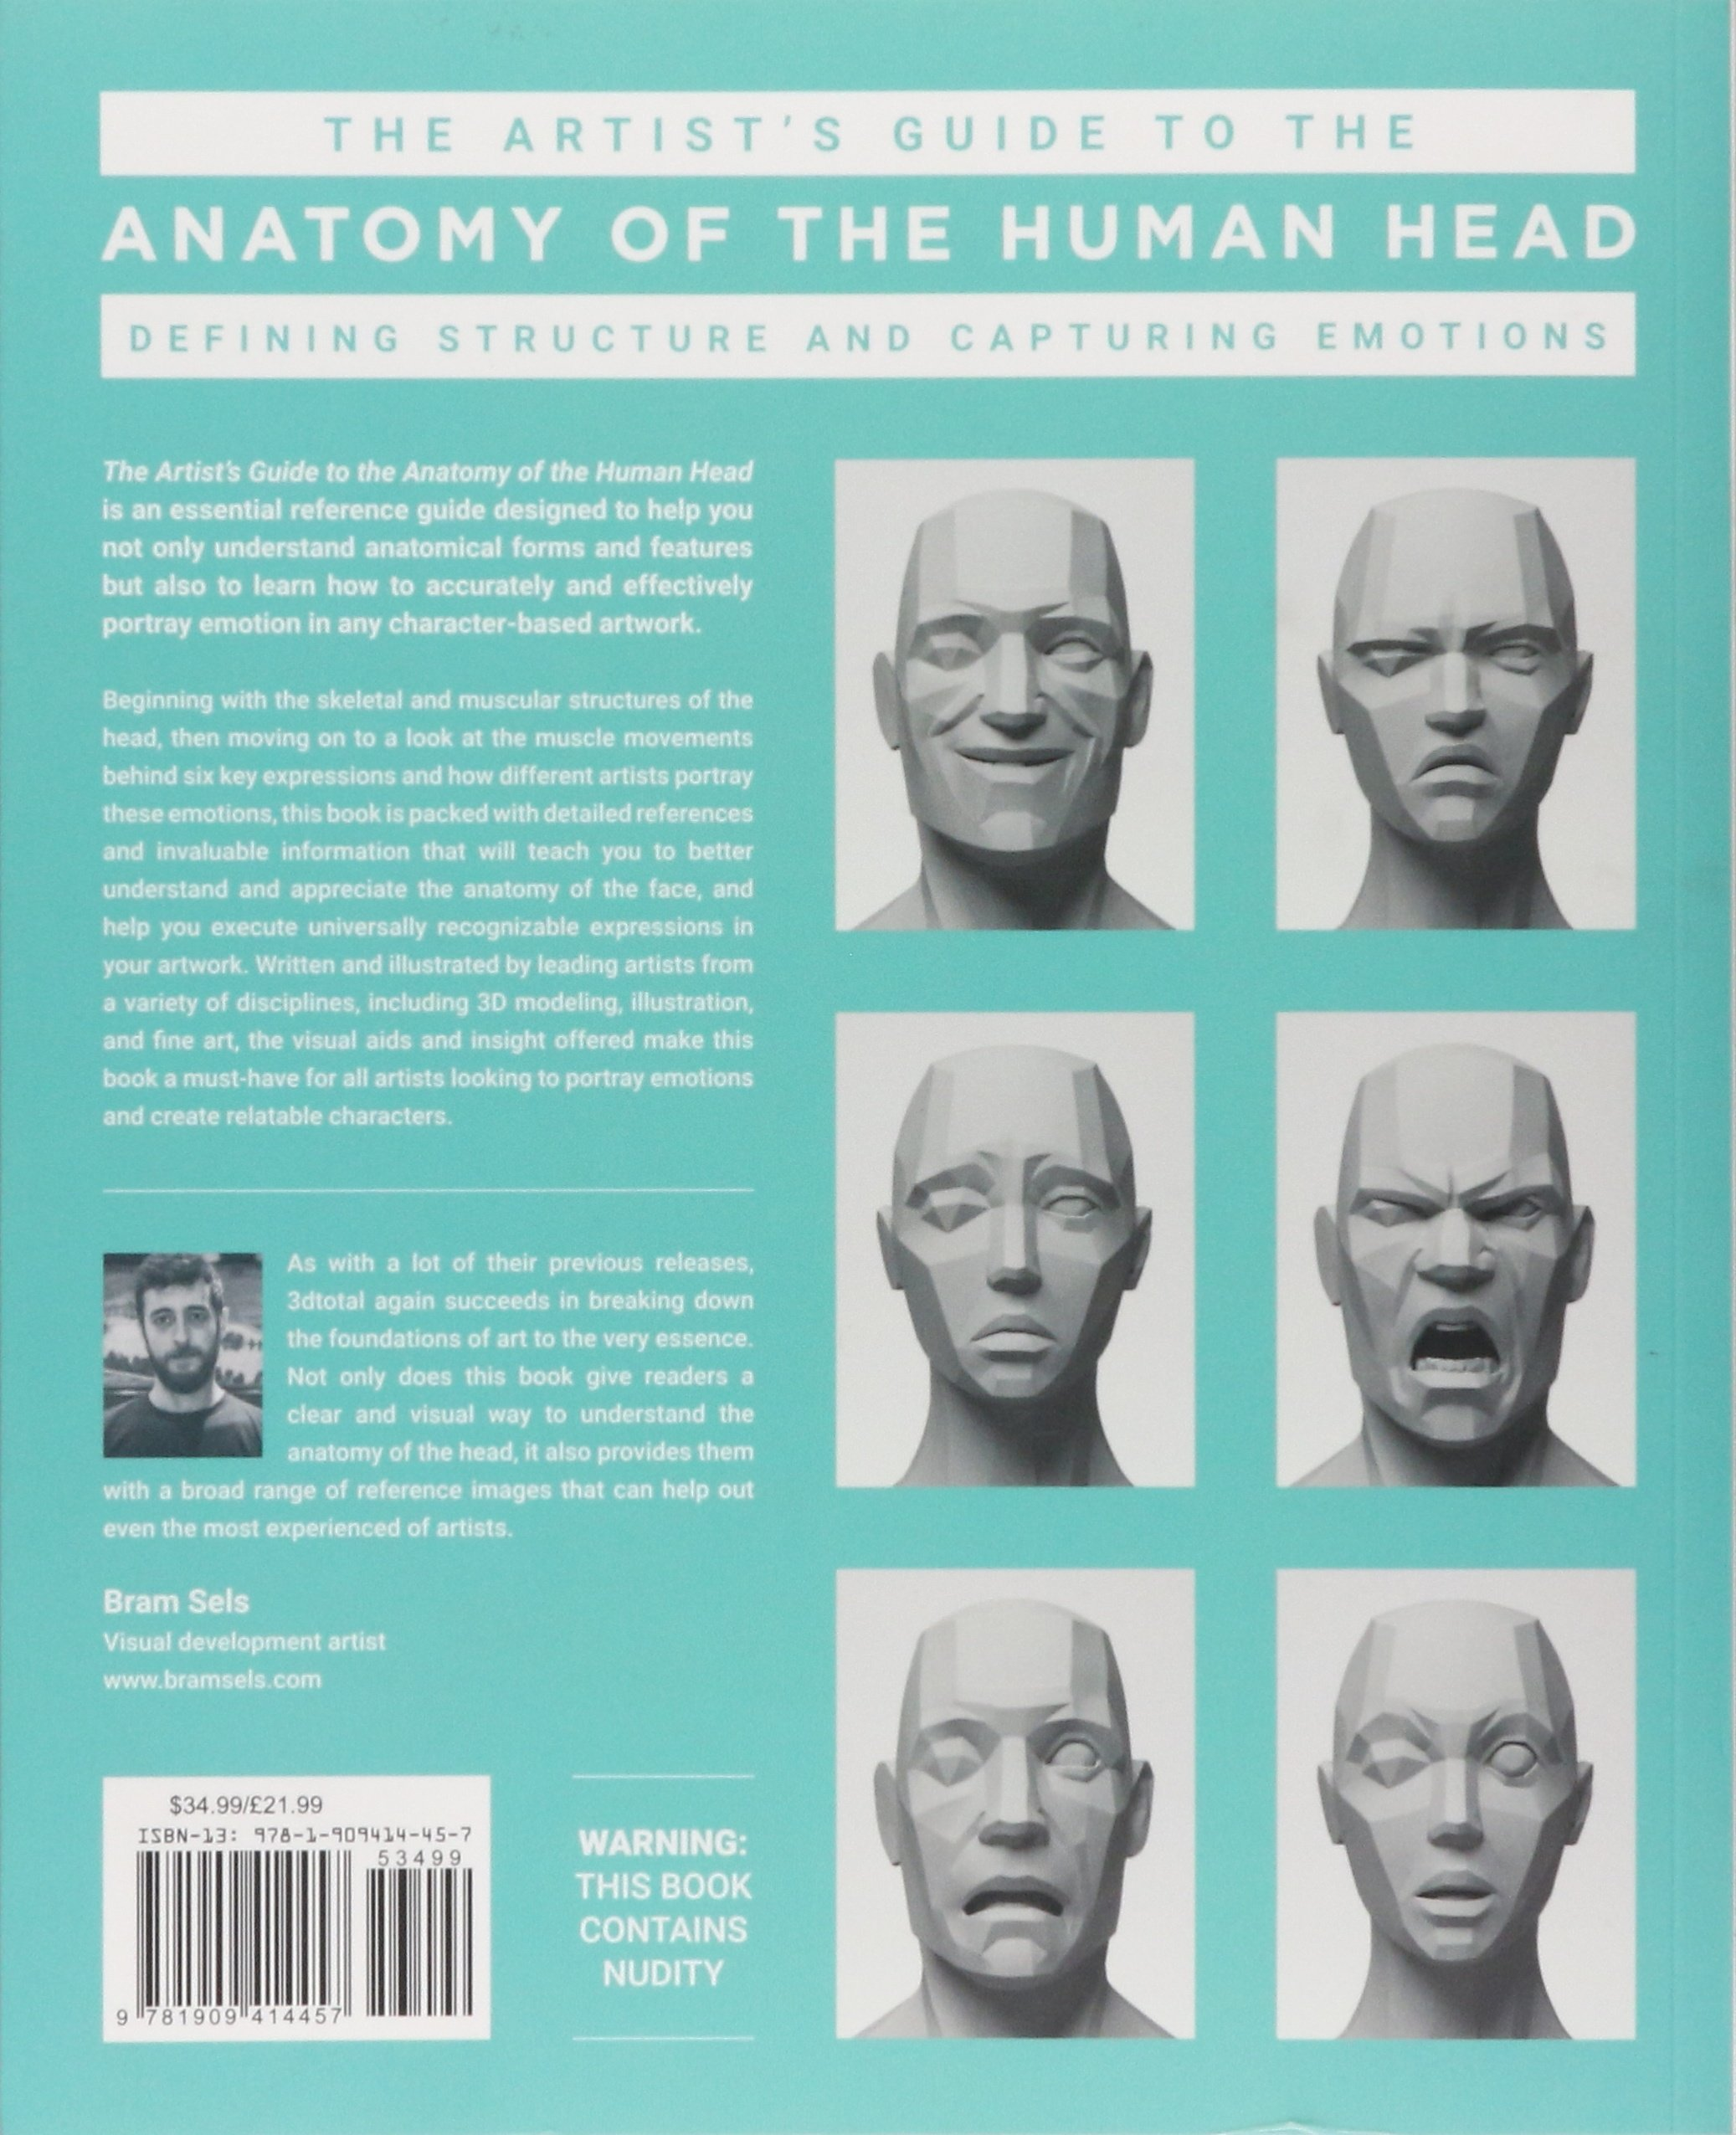 The Artist's Guide to the Anatomy of the Human Head